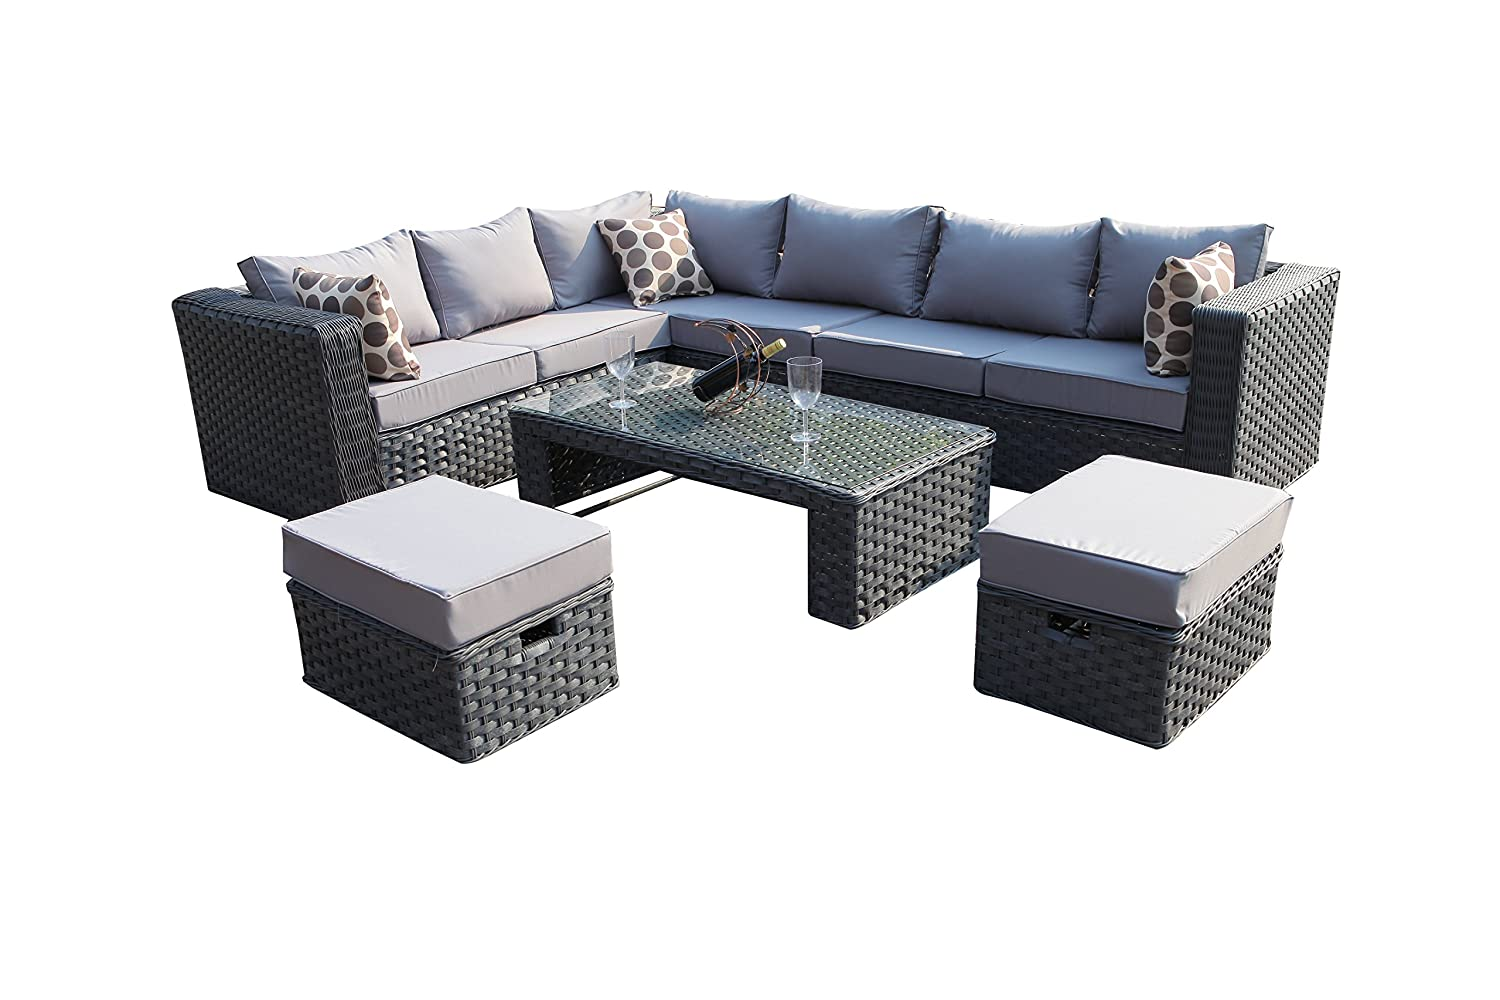 Personable Amazoncouk Garden Furniture Sets Garden  Outdoors With Remarkable Yakoe  Papaver Conservatory Modular  Seater Rattan Corner Garden Sofa With Beautiful Mosaic Garden Tables Sale Also Best Garden Ponds In Addition Kensington Roof Gardens Afternoon Tea And Comedy Clubs In Covent Garden As Well As Garden Protection Additionally Garden Edging Stones Homebase From Amazoncouk With   Remarkable Amazoncouk Garden Furniture Sets Garden  Outdoors With Beautiful Yakoe  Papaver Conservatory Modular  Seater Rattan Corner Garden Sofa And Personable Mosaic Garden Tables Sale Also Best Garden Ponds In Addition Kensington Roof Gardens Afternoon Tea From Amazoncouk